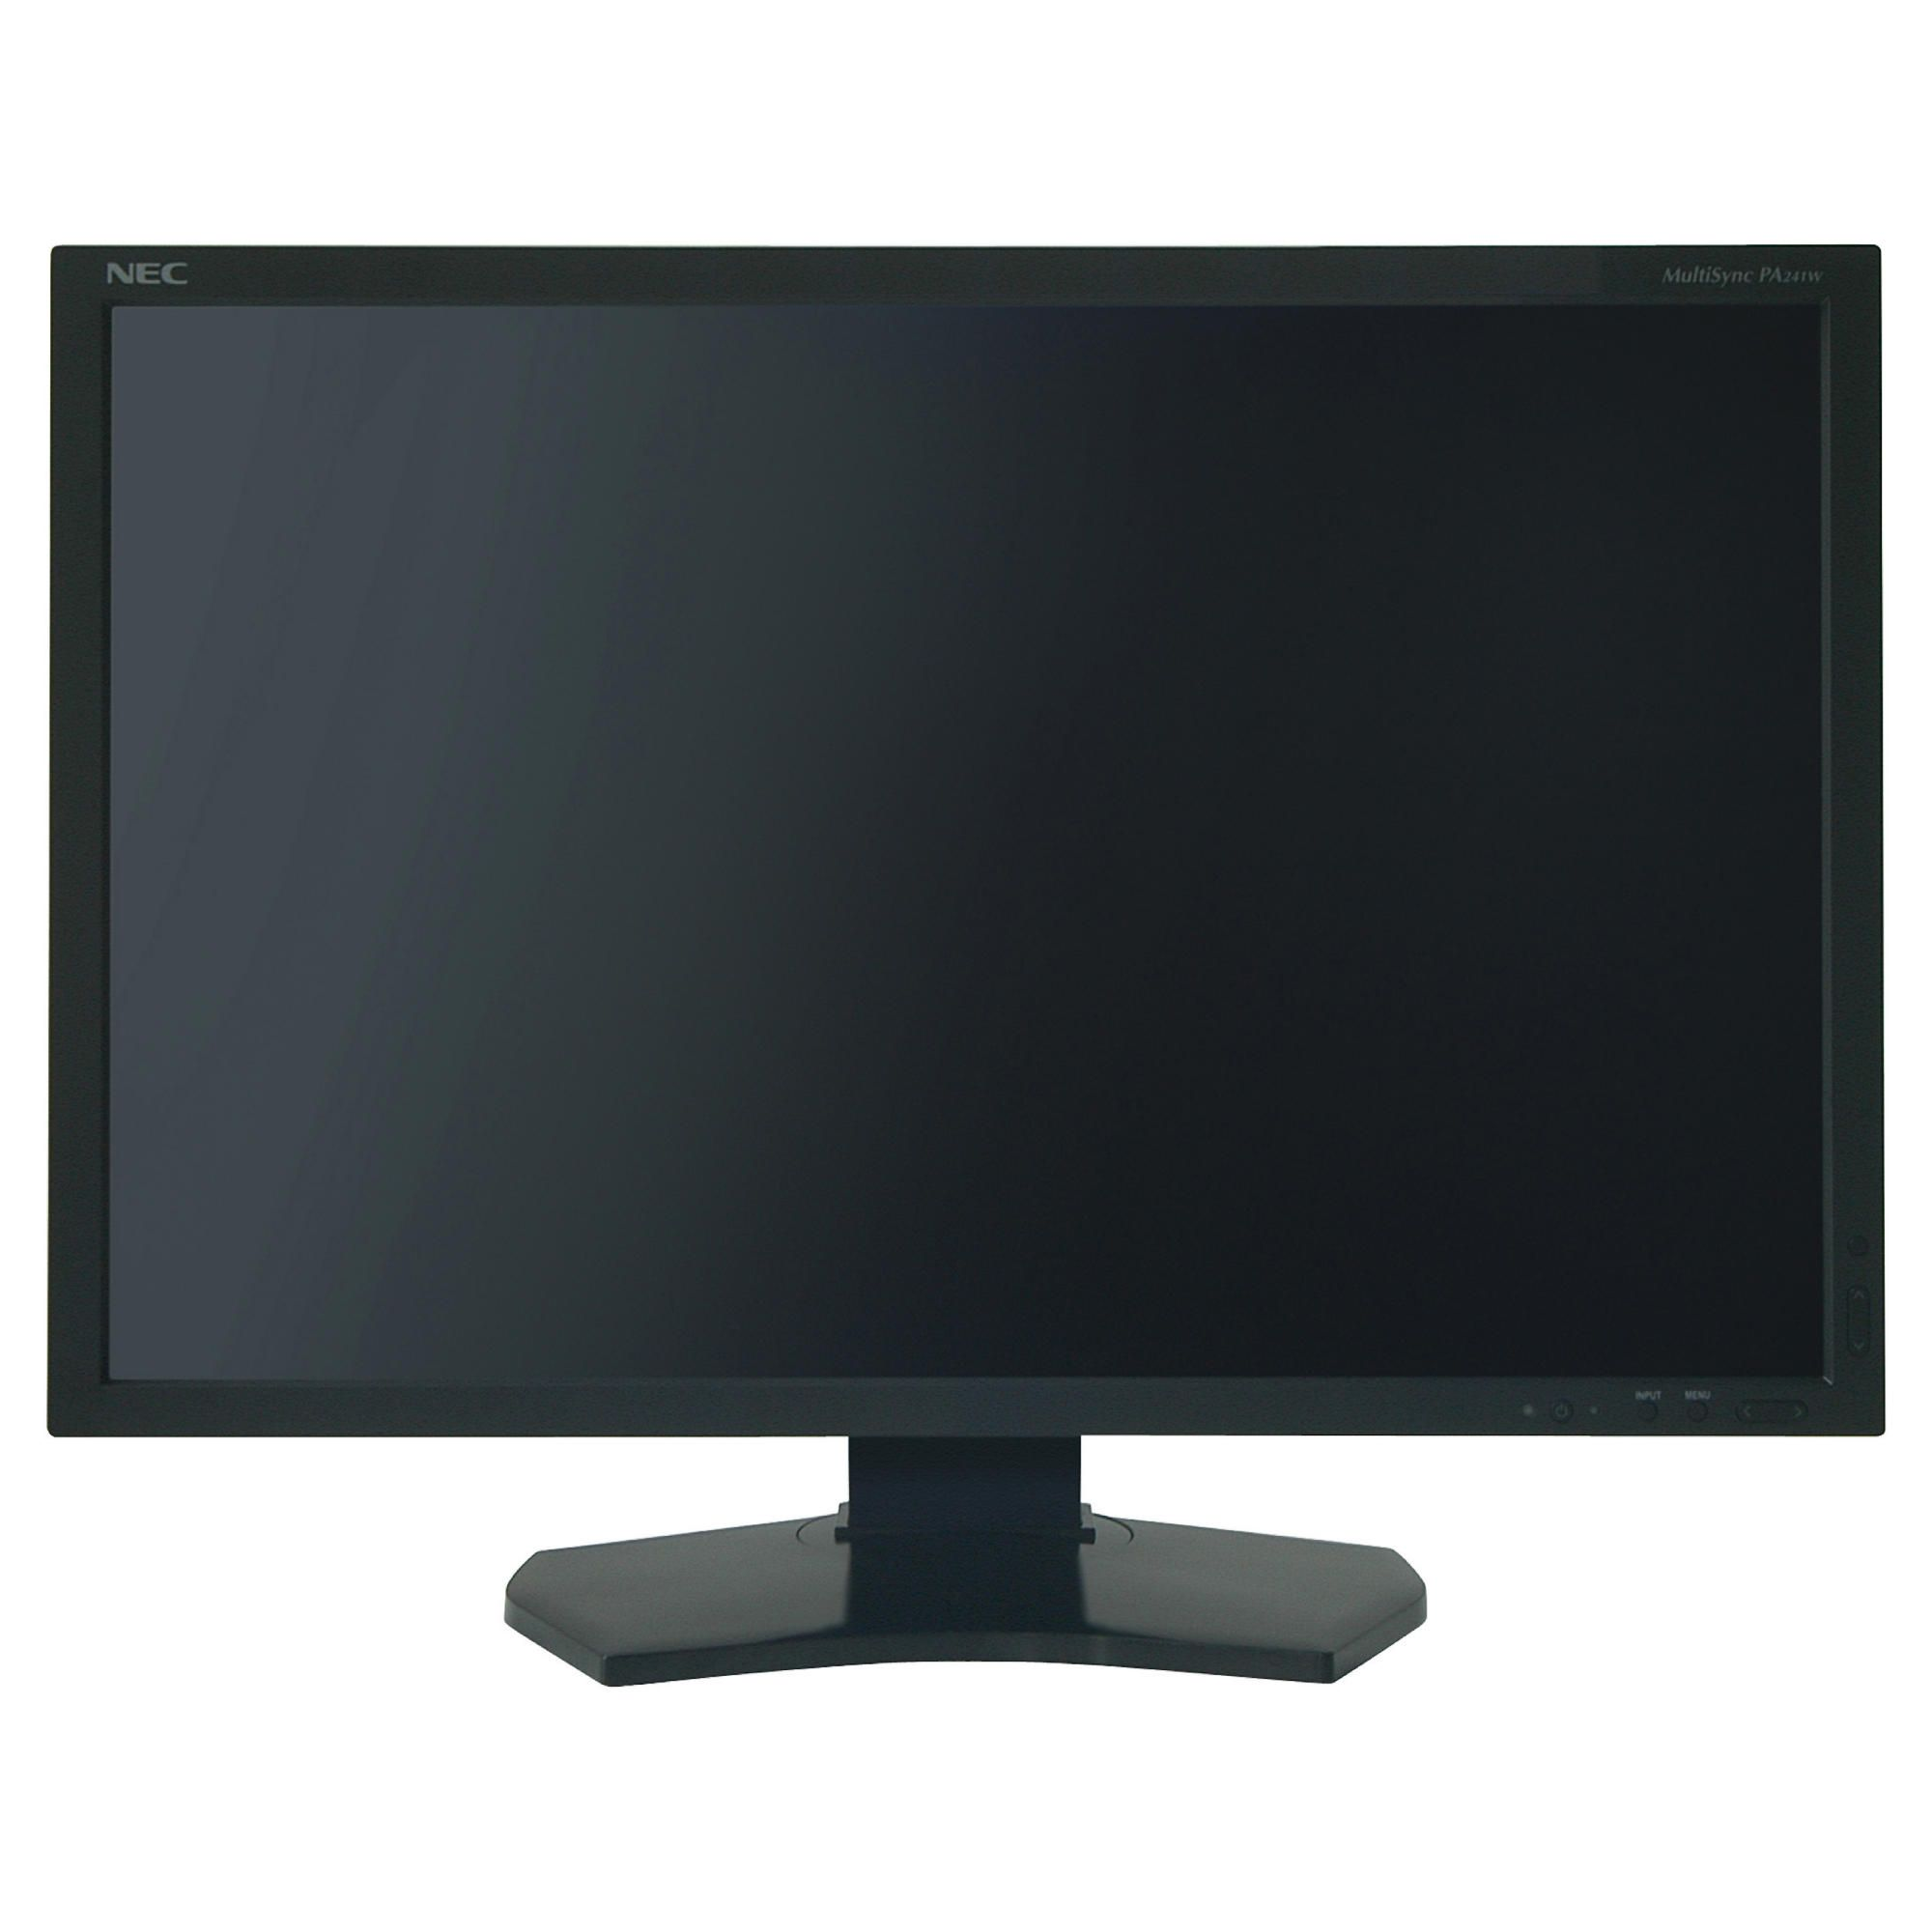 NEC PA271WB 27'' LCD Monitor Black at Tesco Direct